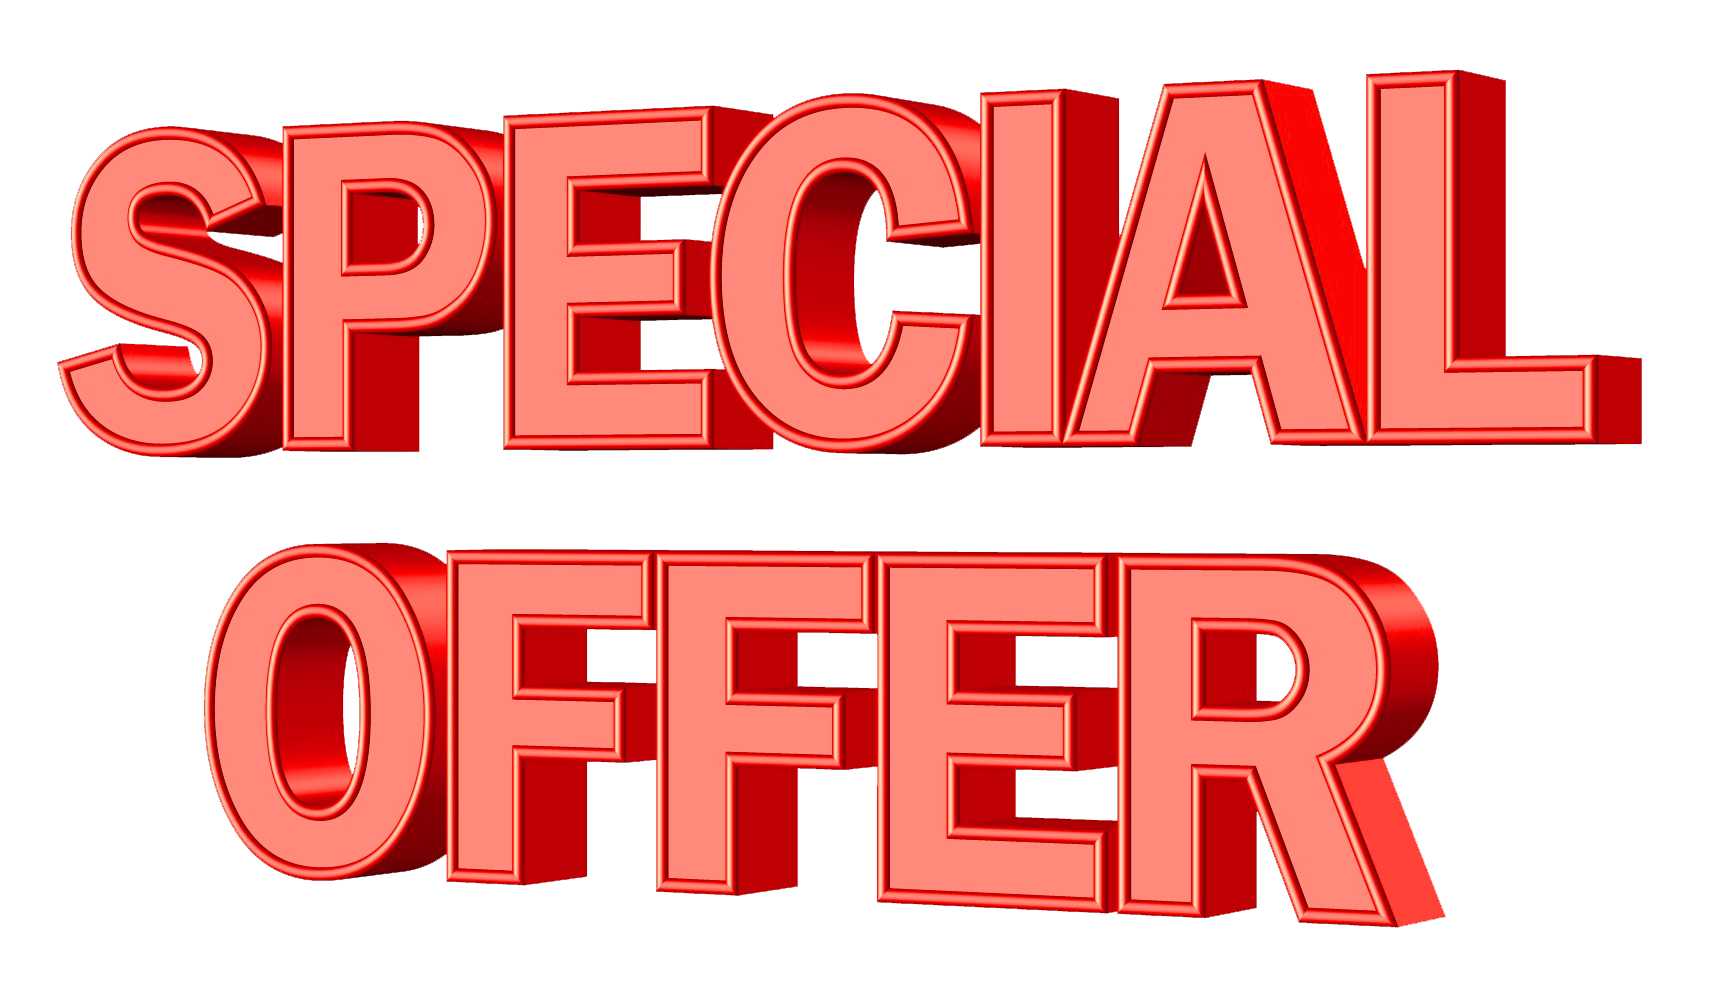 Special Offer PNG - 8460